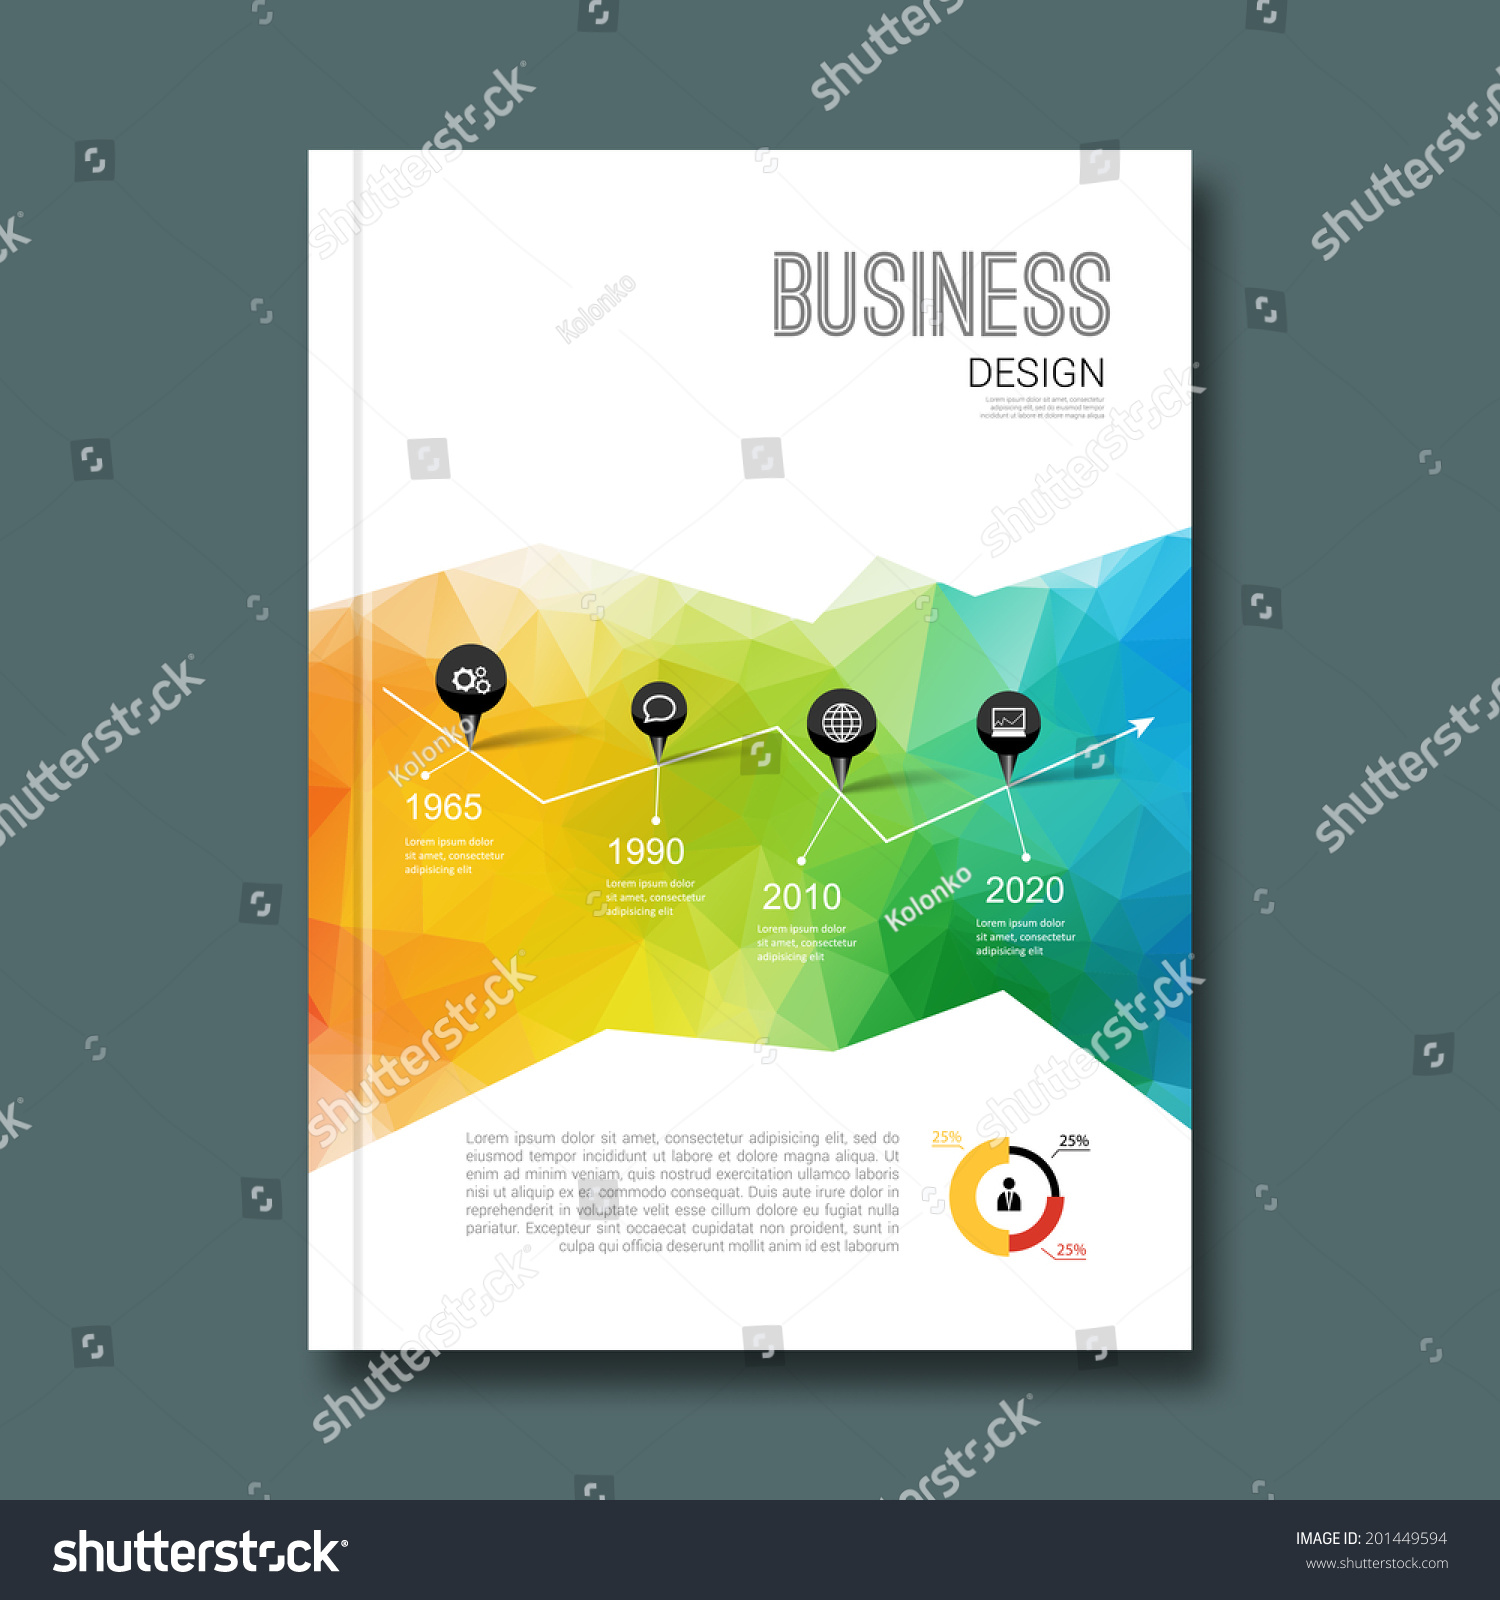 Business Book Cover Design Template : Business design background cover book report stock vector